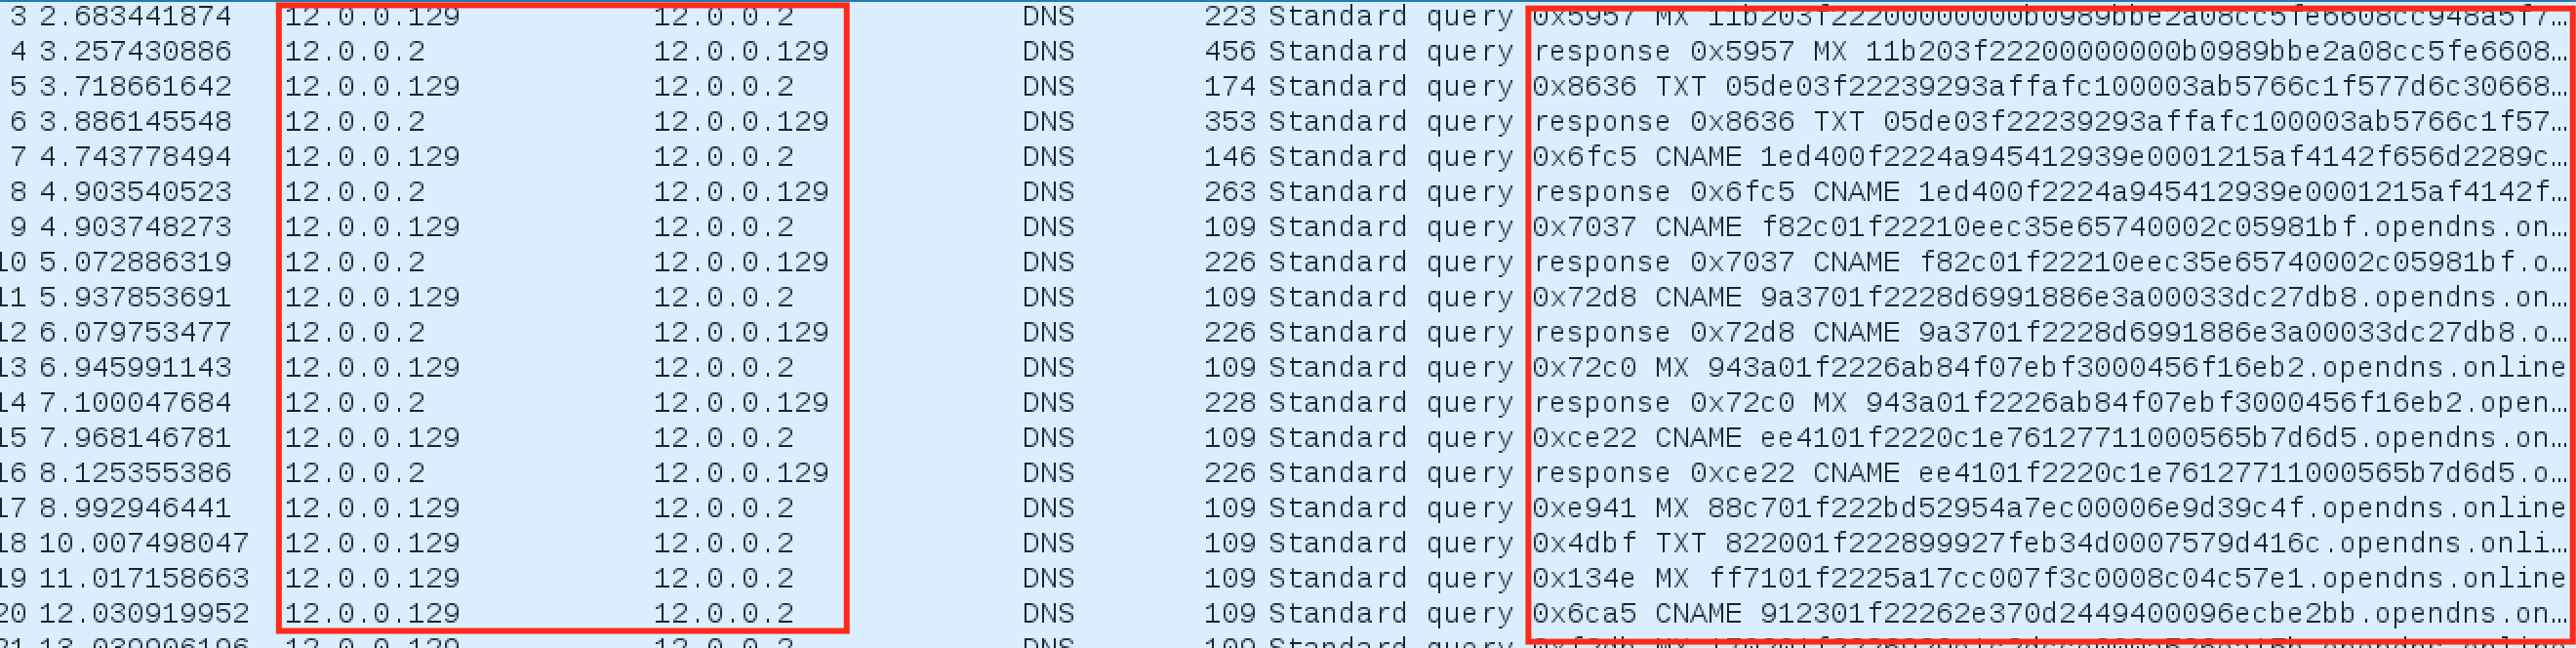 dnscat2-wireshark